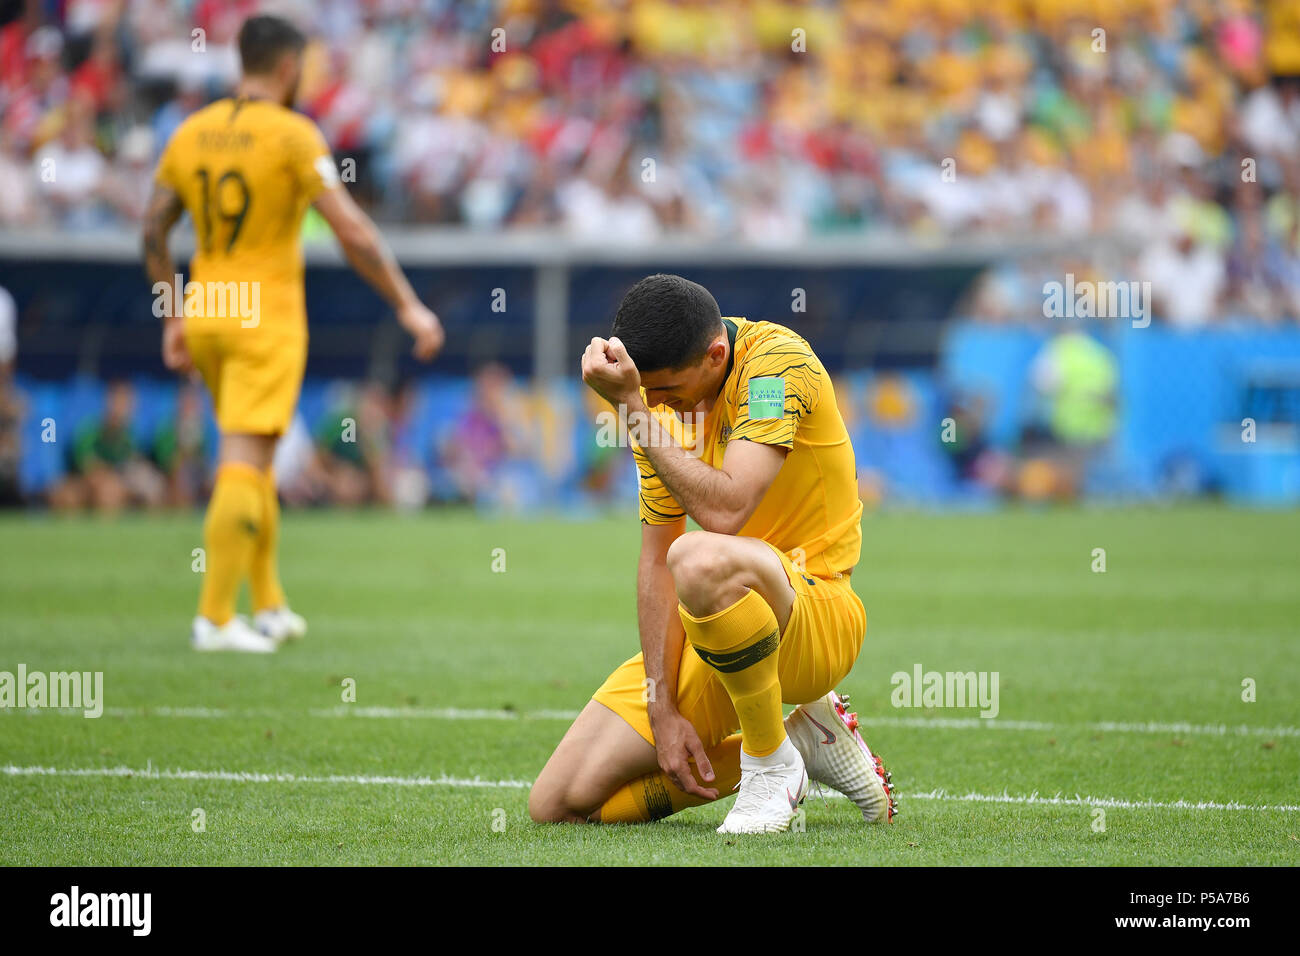 Sochi, Russland. 26th June, 2018. Tom ROGIC (AUS), disappointment, frustrated, disappointed, frustratedriert, dejected, after missed goalchance, action, single action, frame, cut out, full body shot, whole figure. Australia (AUS) - Peru (PER) 0-2, Preliminary Round, Group C, Game 38, on 26.06.2018 in SOCHI, Fisht Olymipic Stadium. Football World Cup 2018 in Russia from 14.06. - 15.07.2018. | usage worldwide Credit: dpa/Alamy Live News - Stock Image